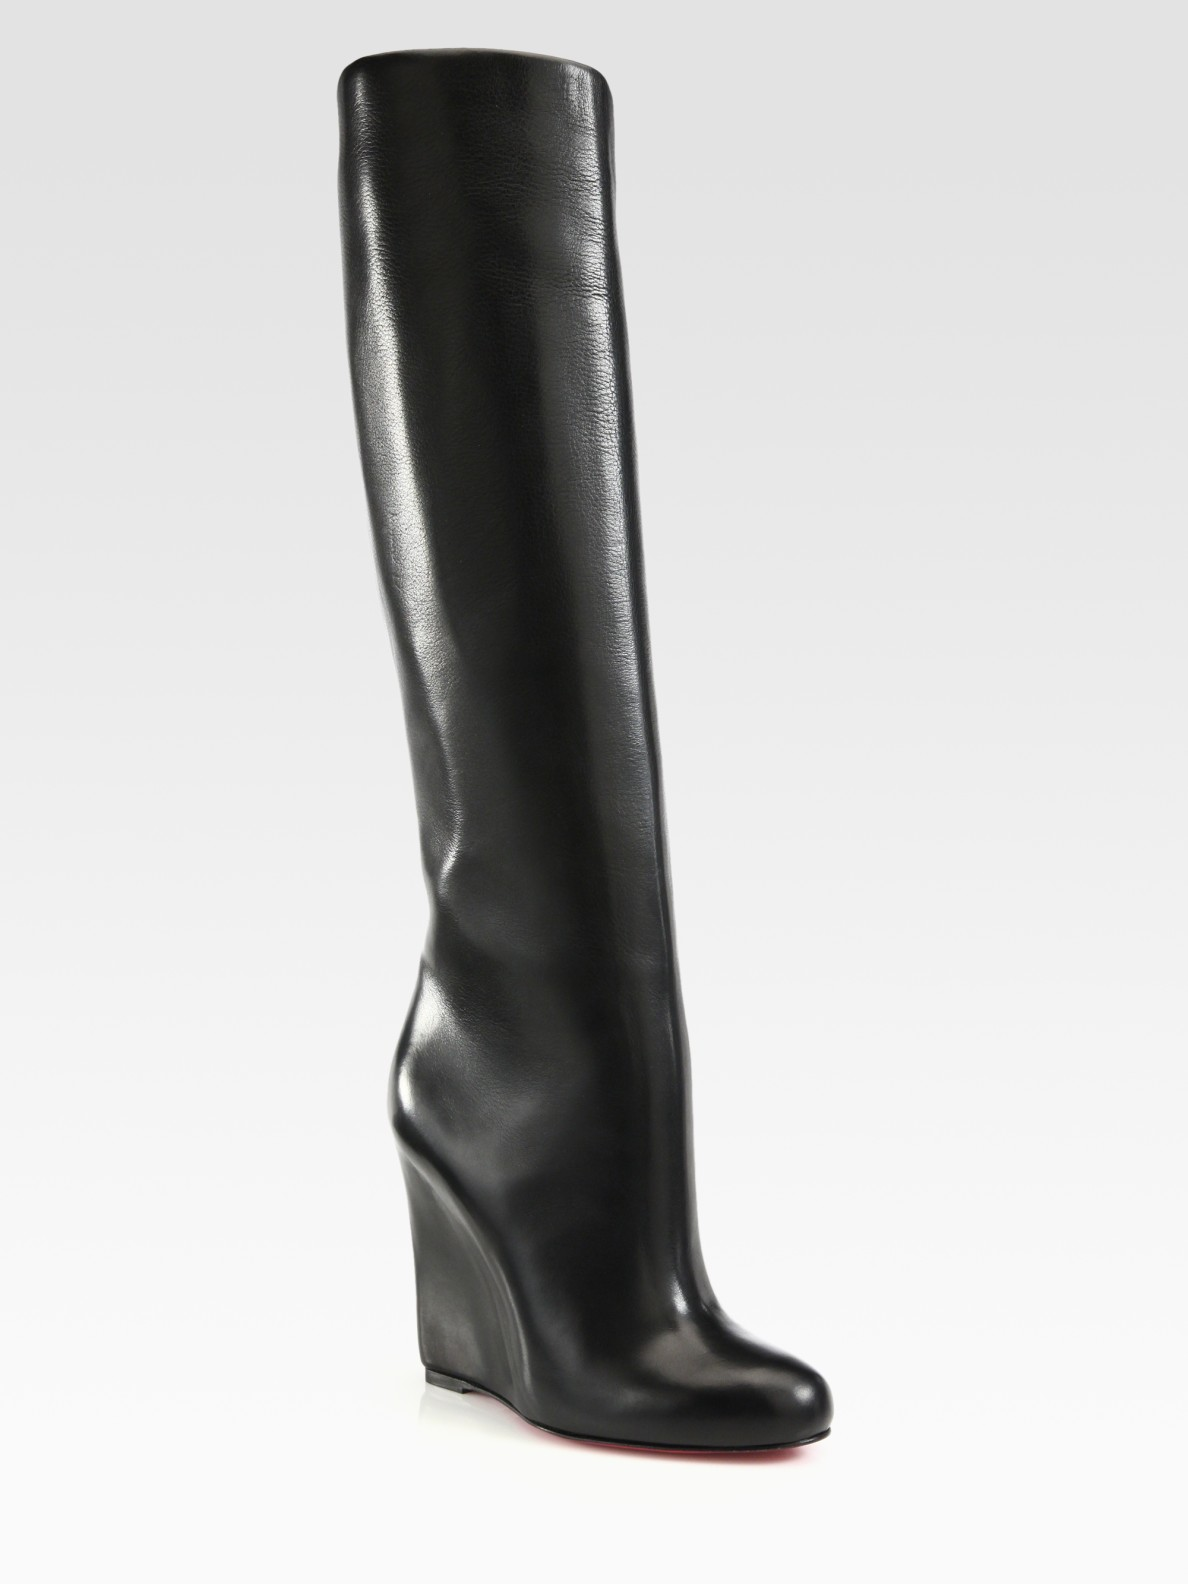 754ad4d2d94 Christian Louboutin Black Leather Overtheknee Wedge Boots